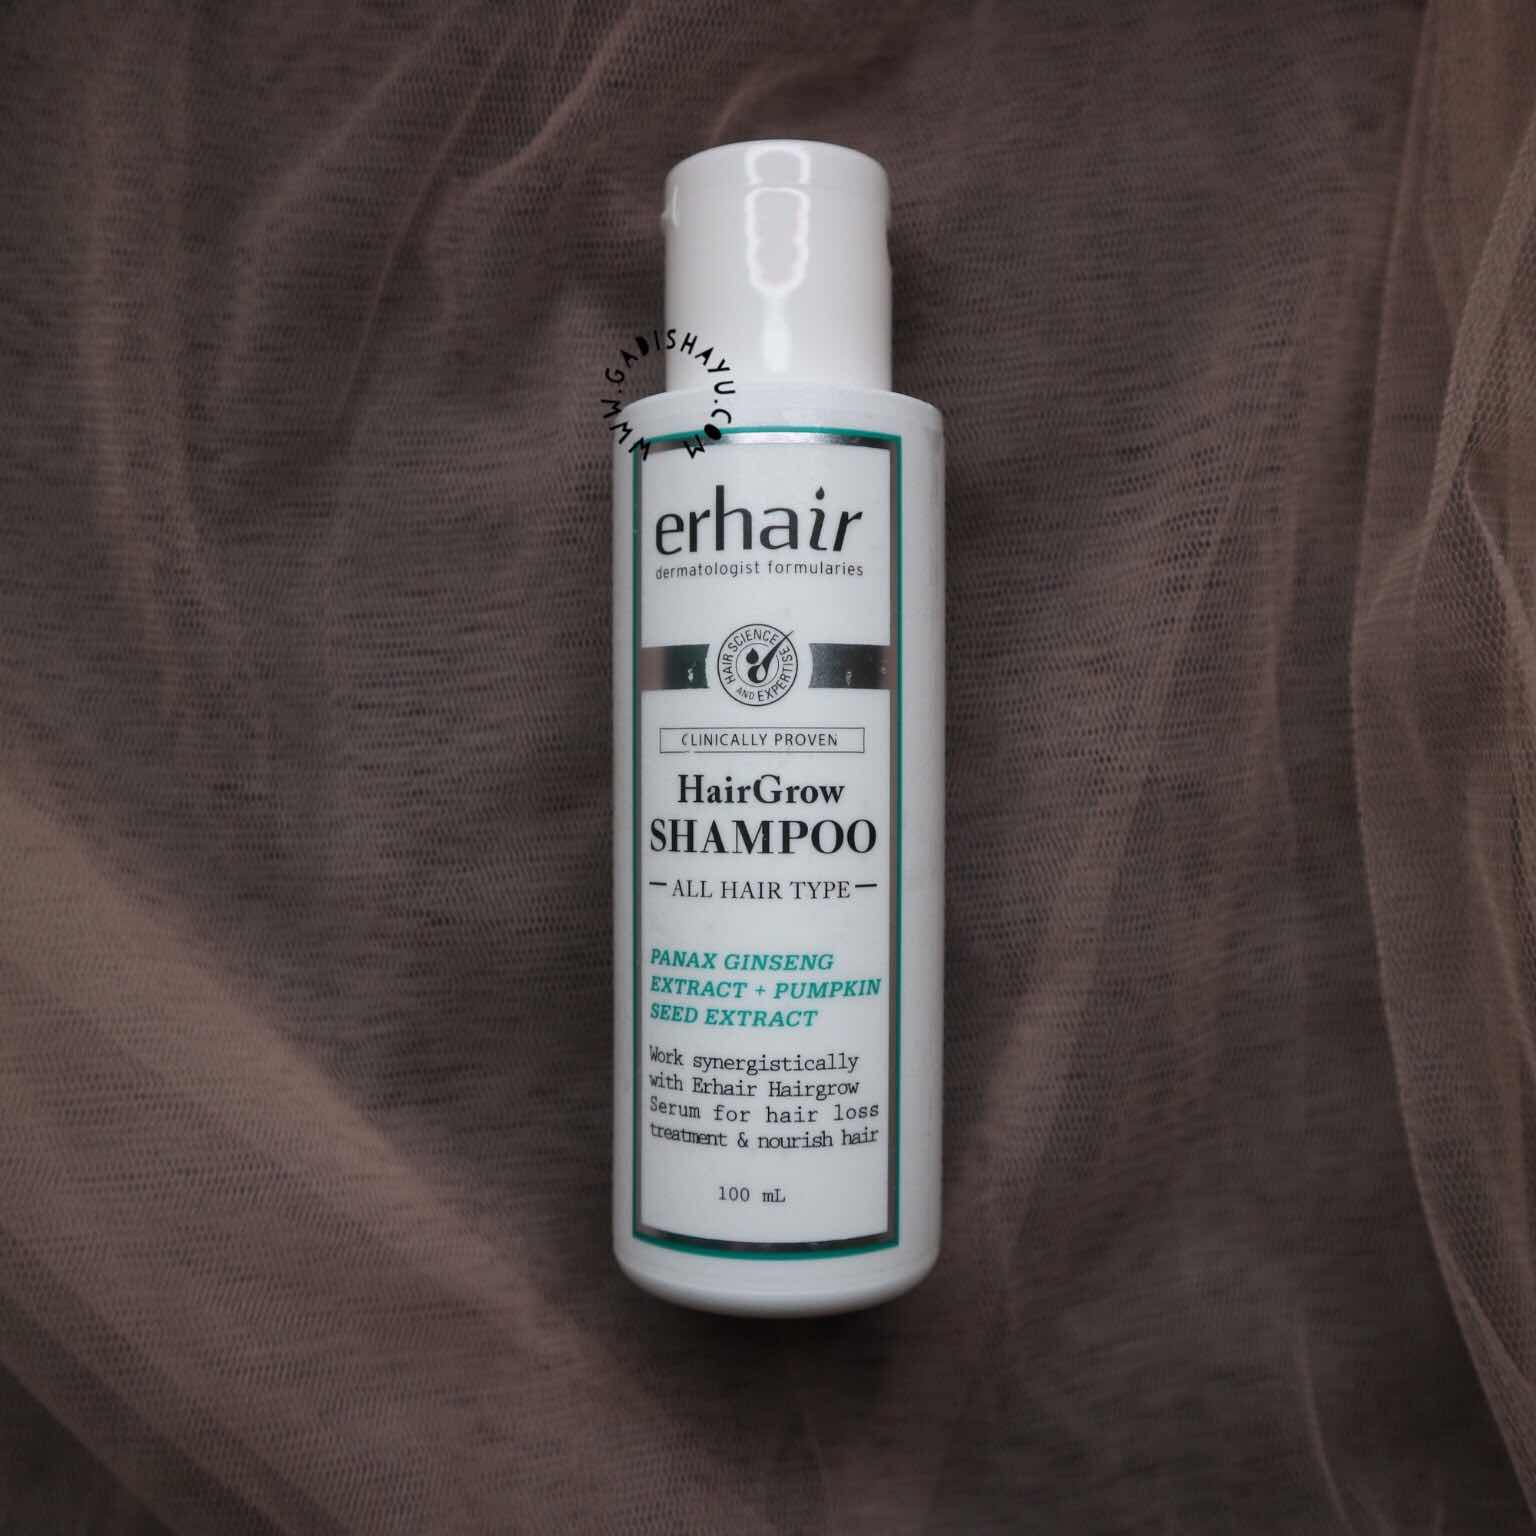 erhair hairgrow shampoo